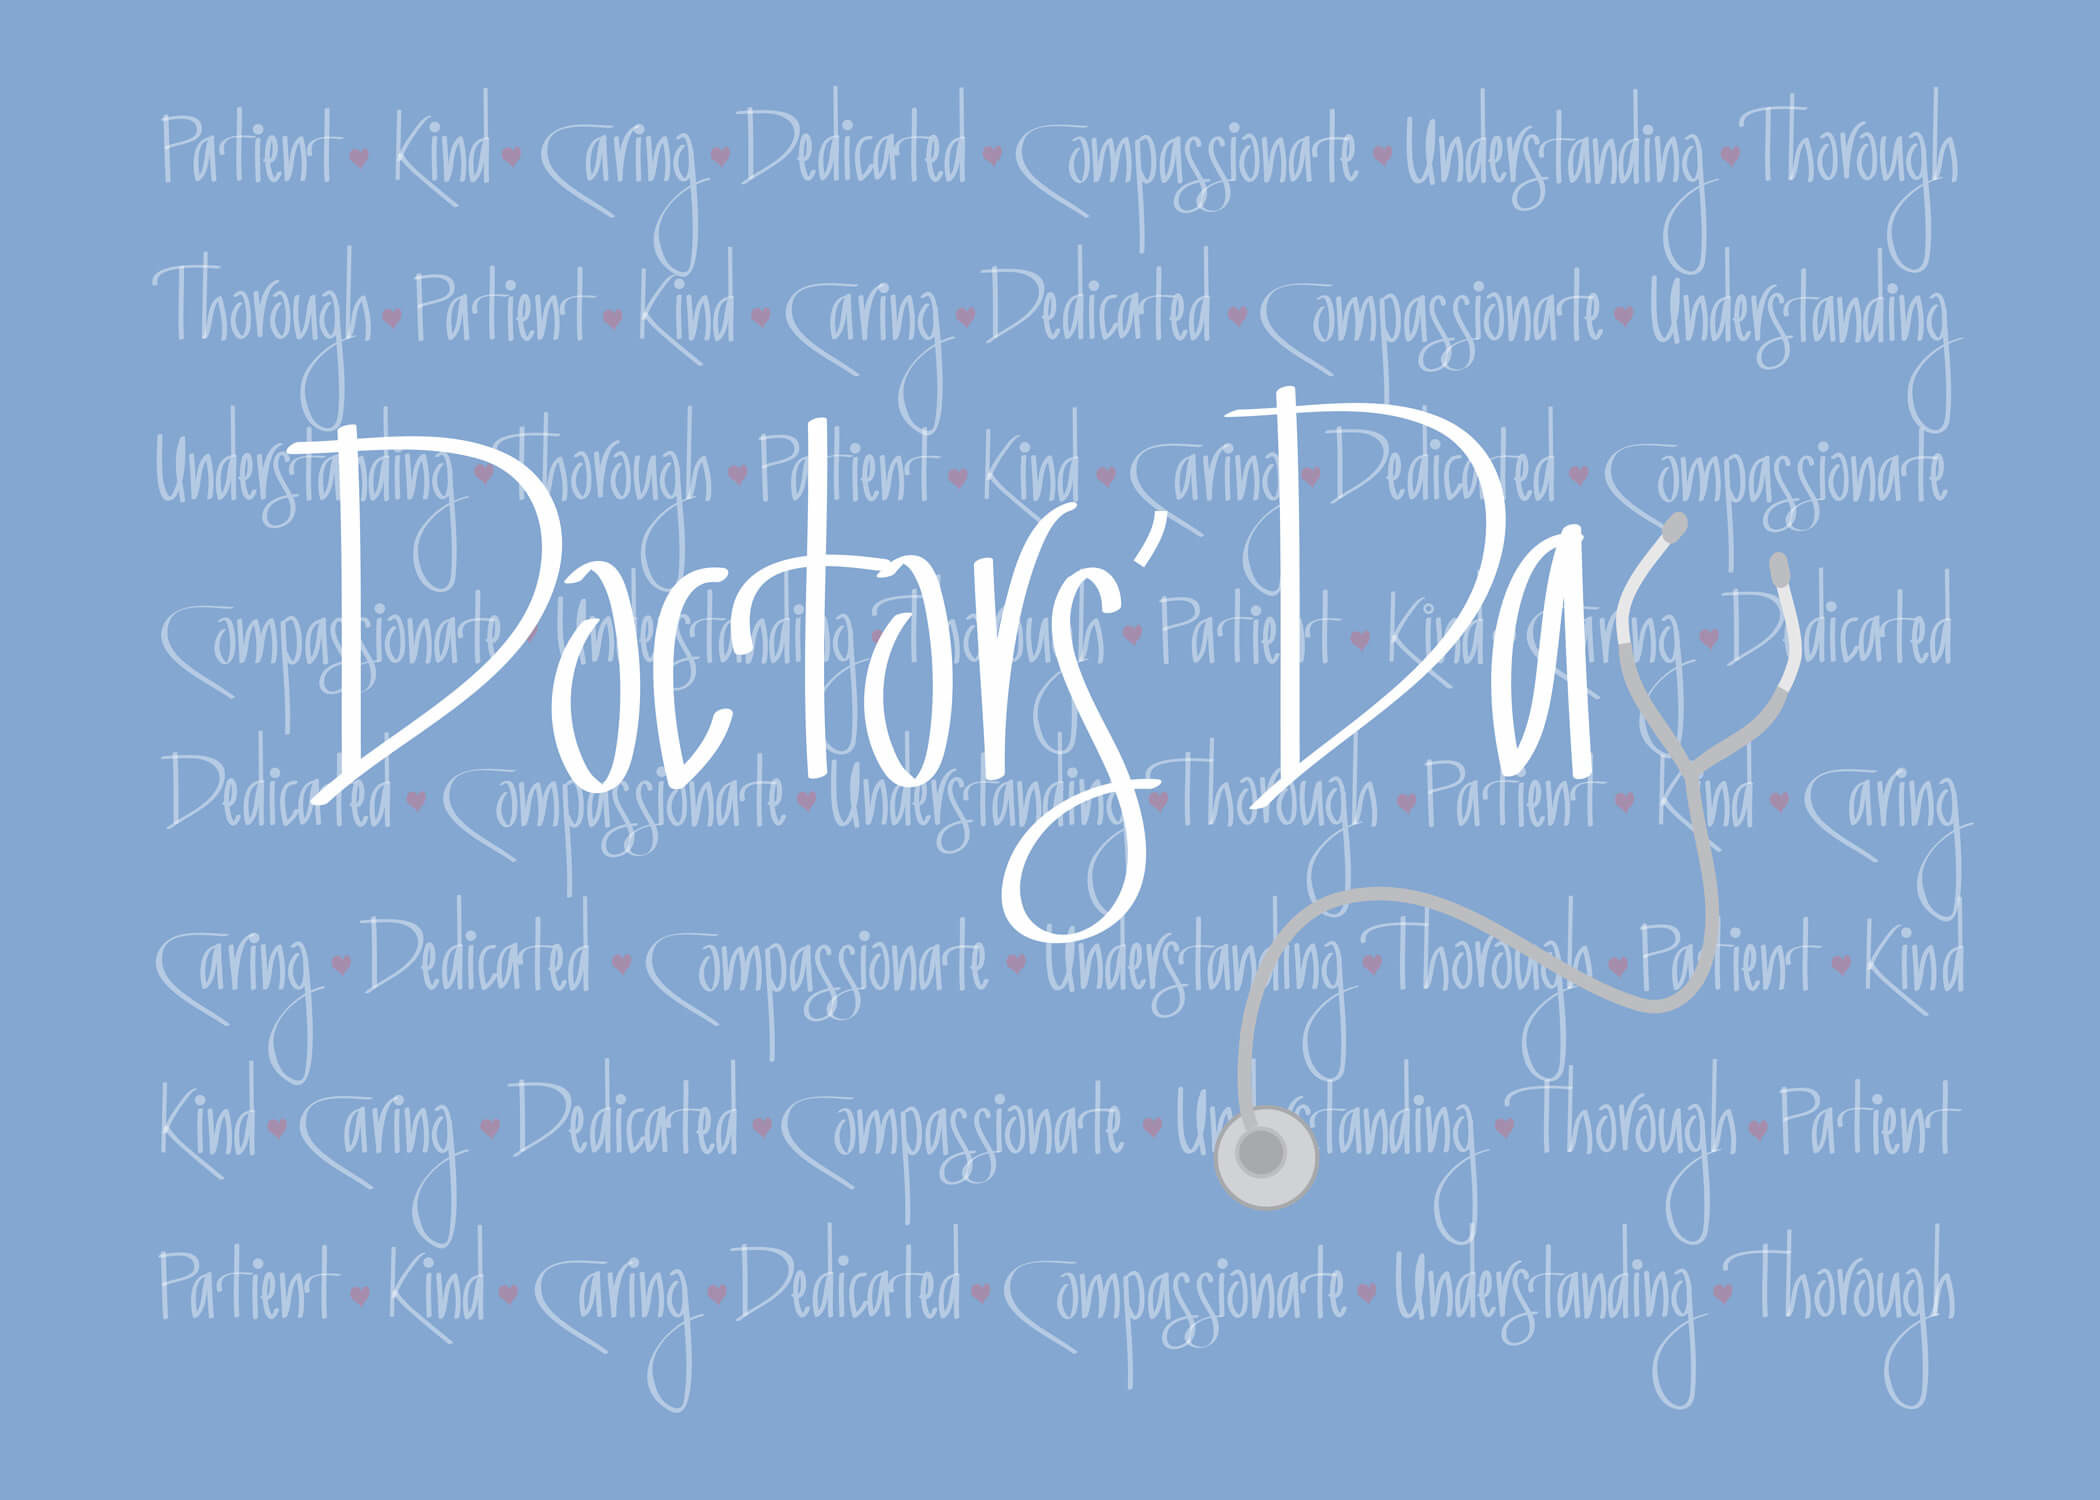 The 25+ best Happy doctors day images ideas on Pinterest | Tenth doctor,  Doctor who rose tyler and Donna noble